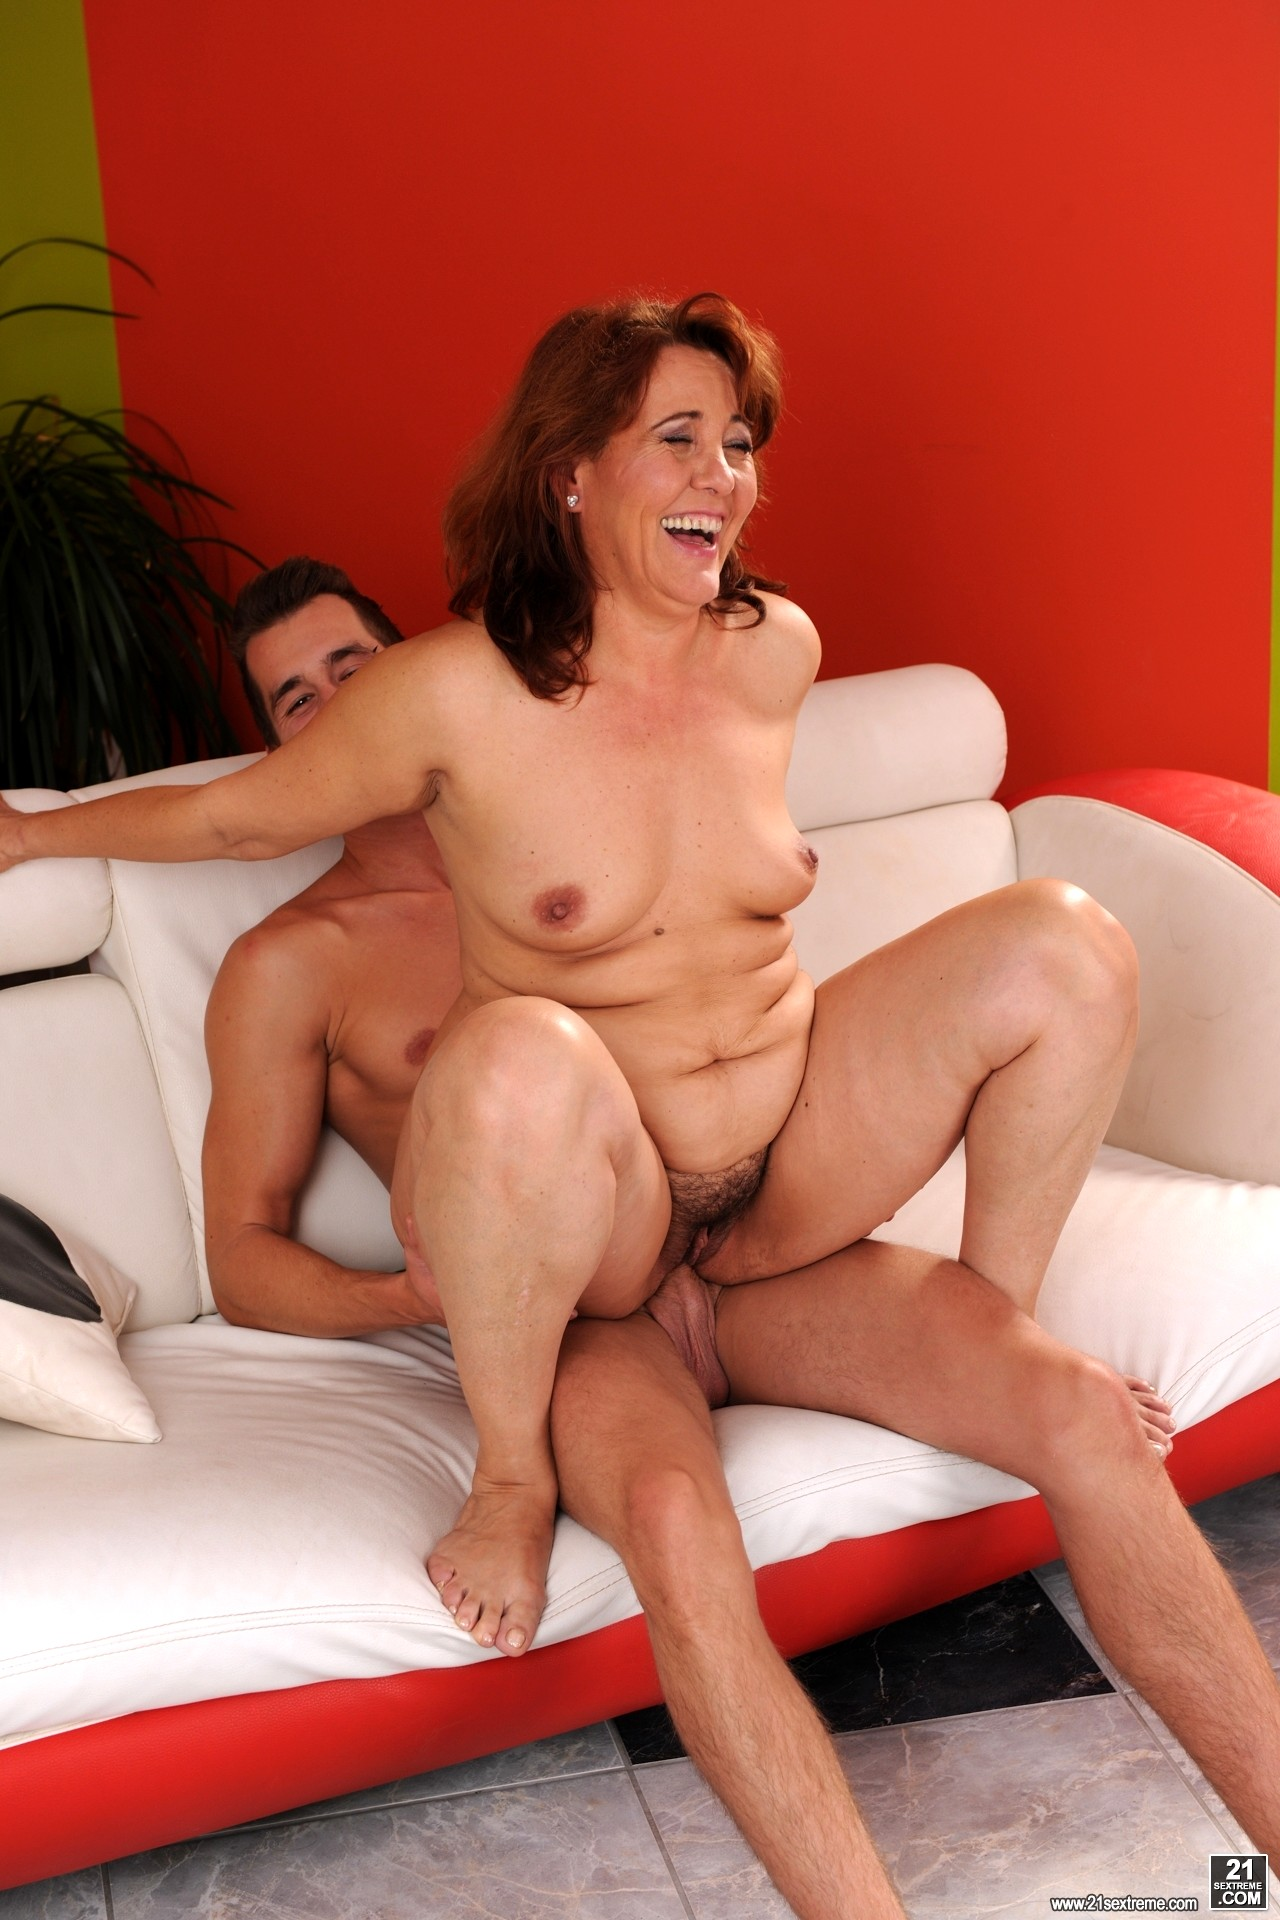 Hot mature woman getting fucked